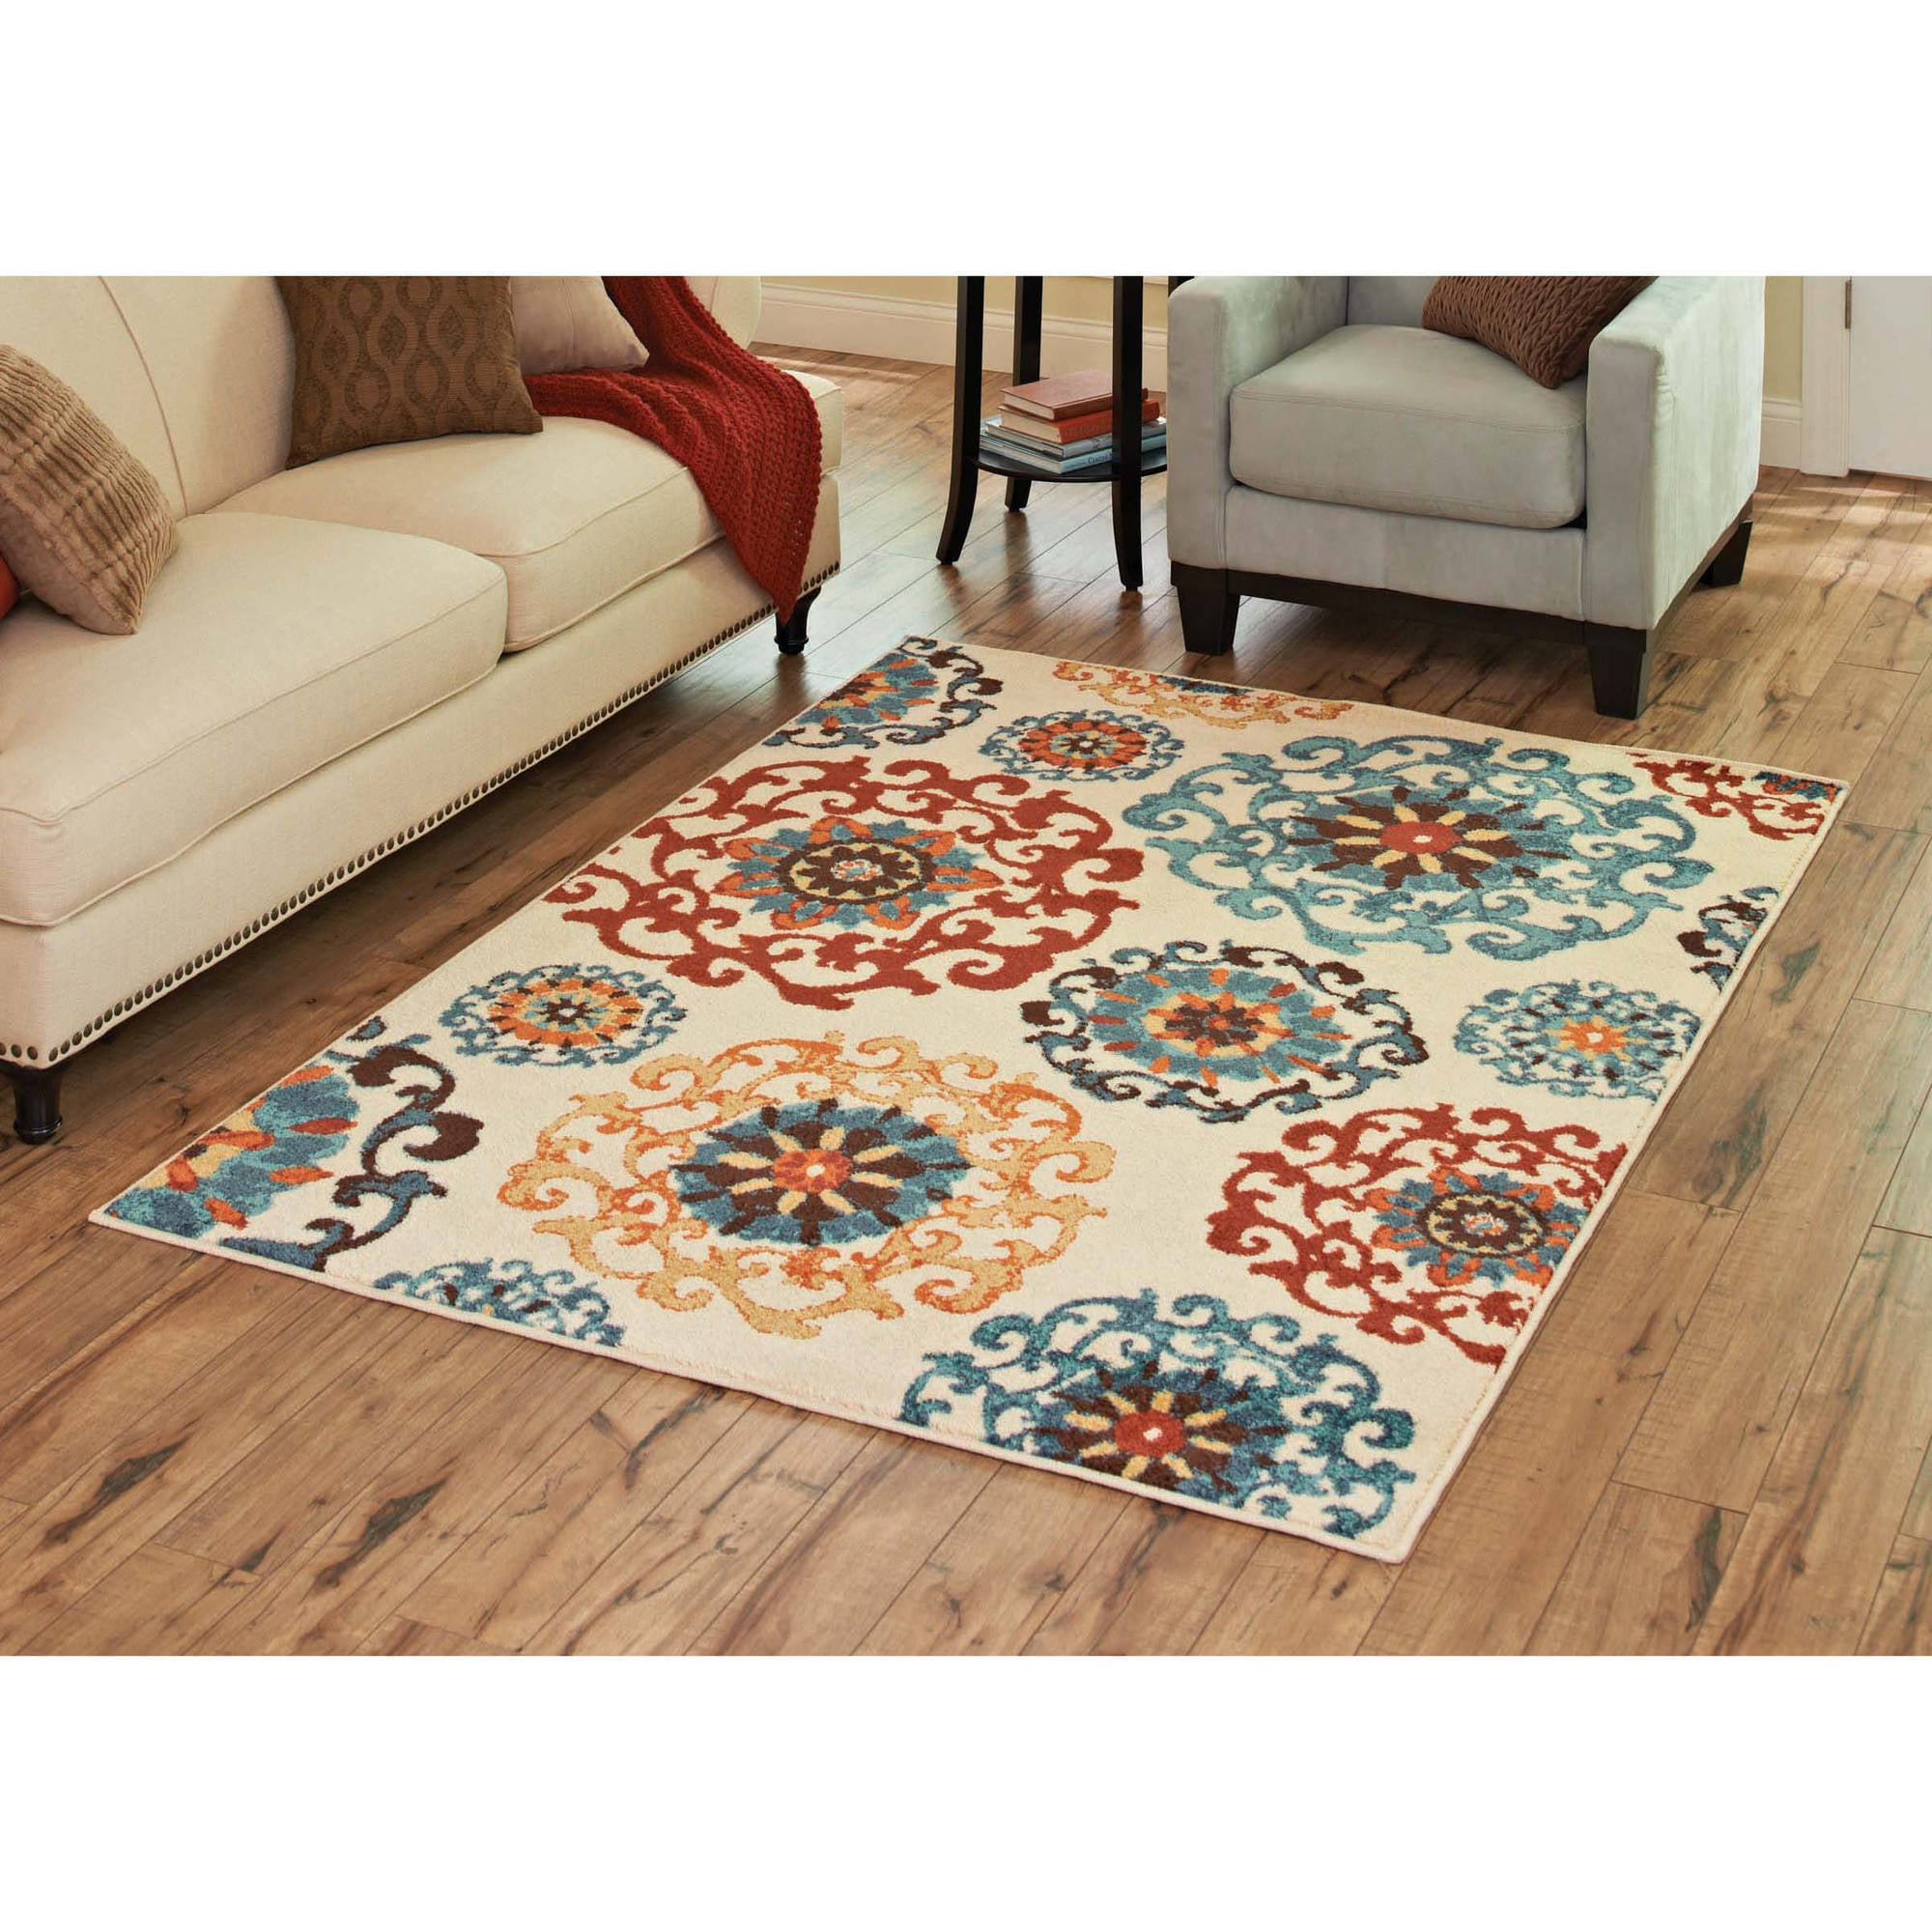 Bedroom Rugs Walmart Com